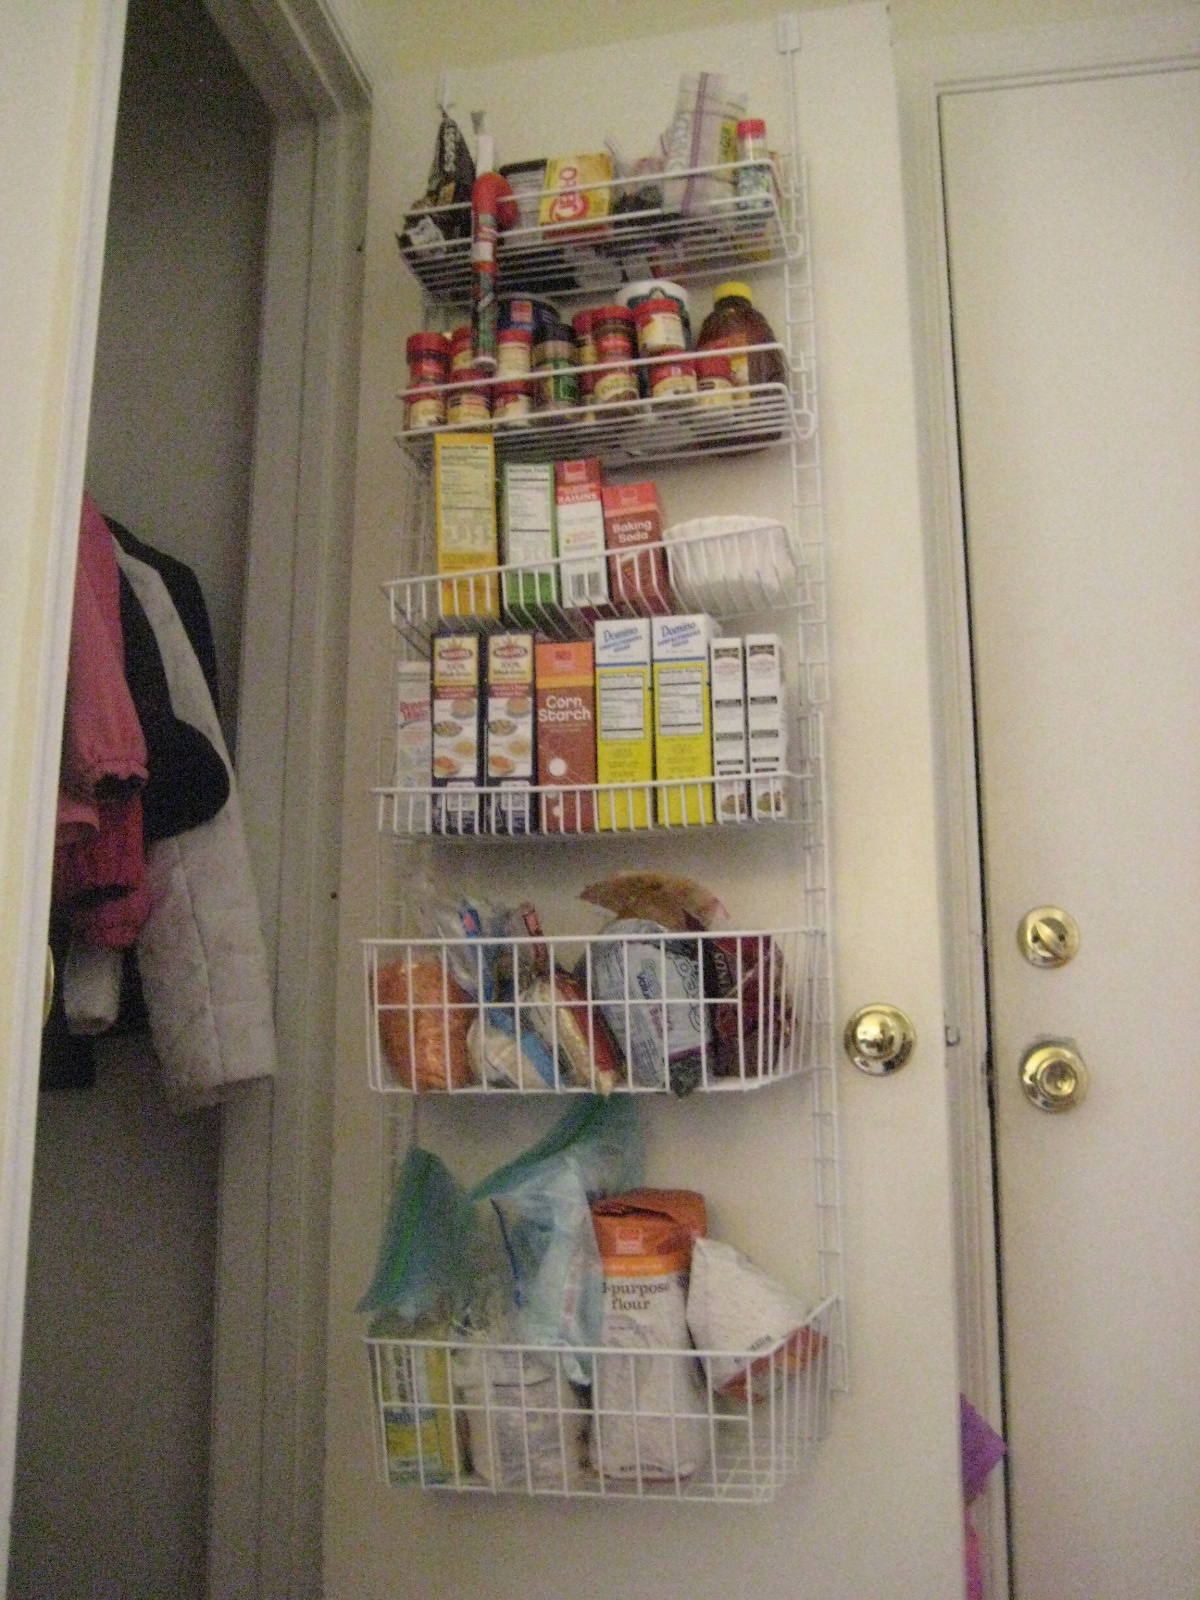 Apartment Improv Coat Closet And Pantry Small Steps Big Picture